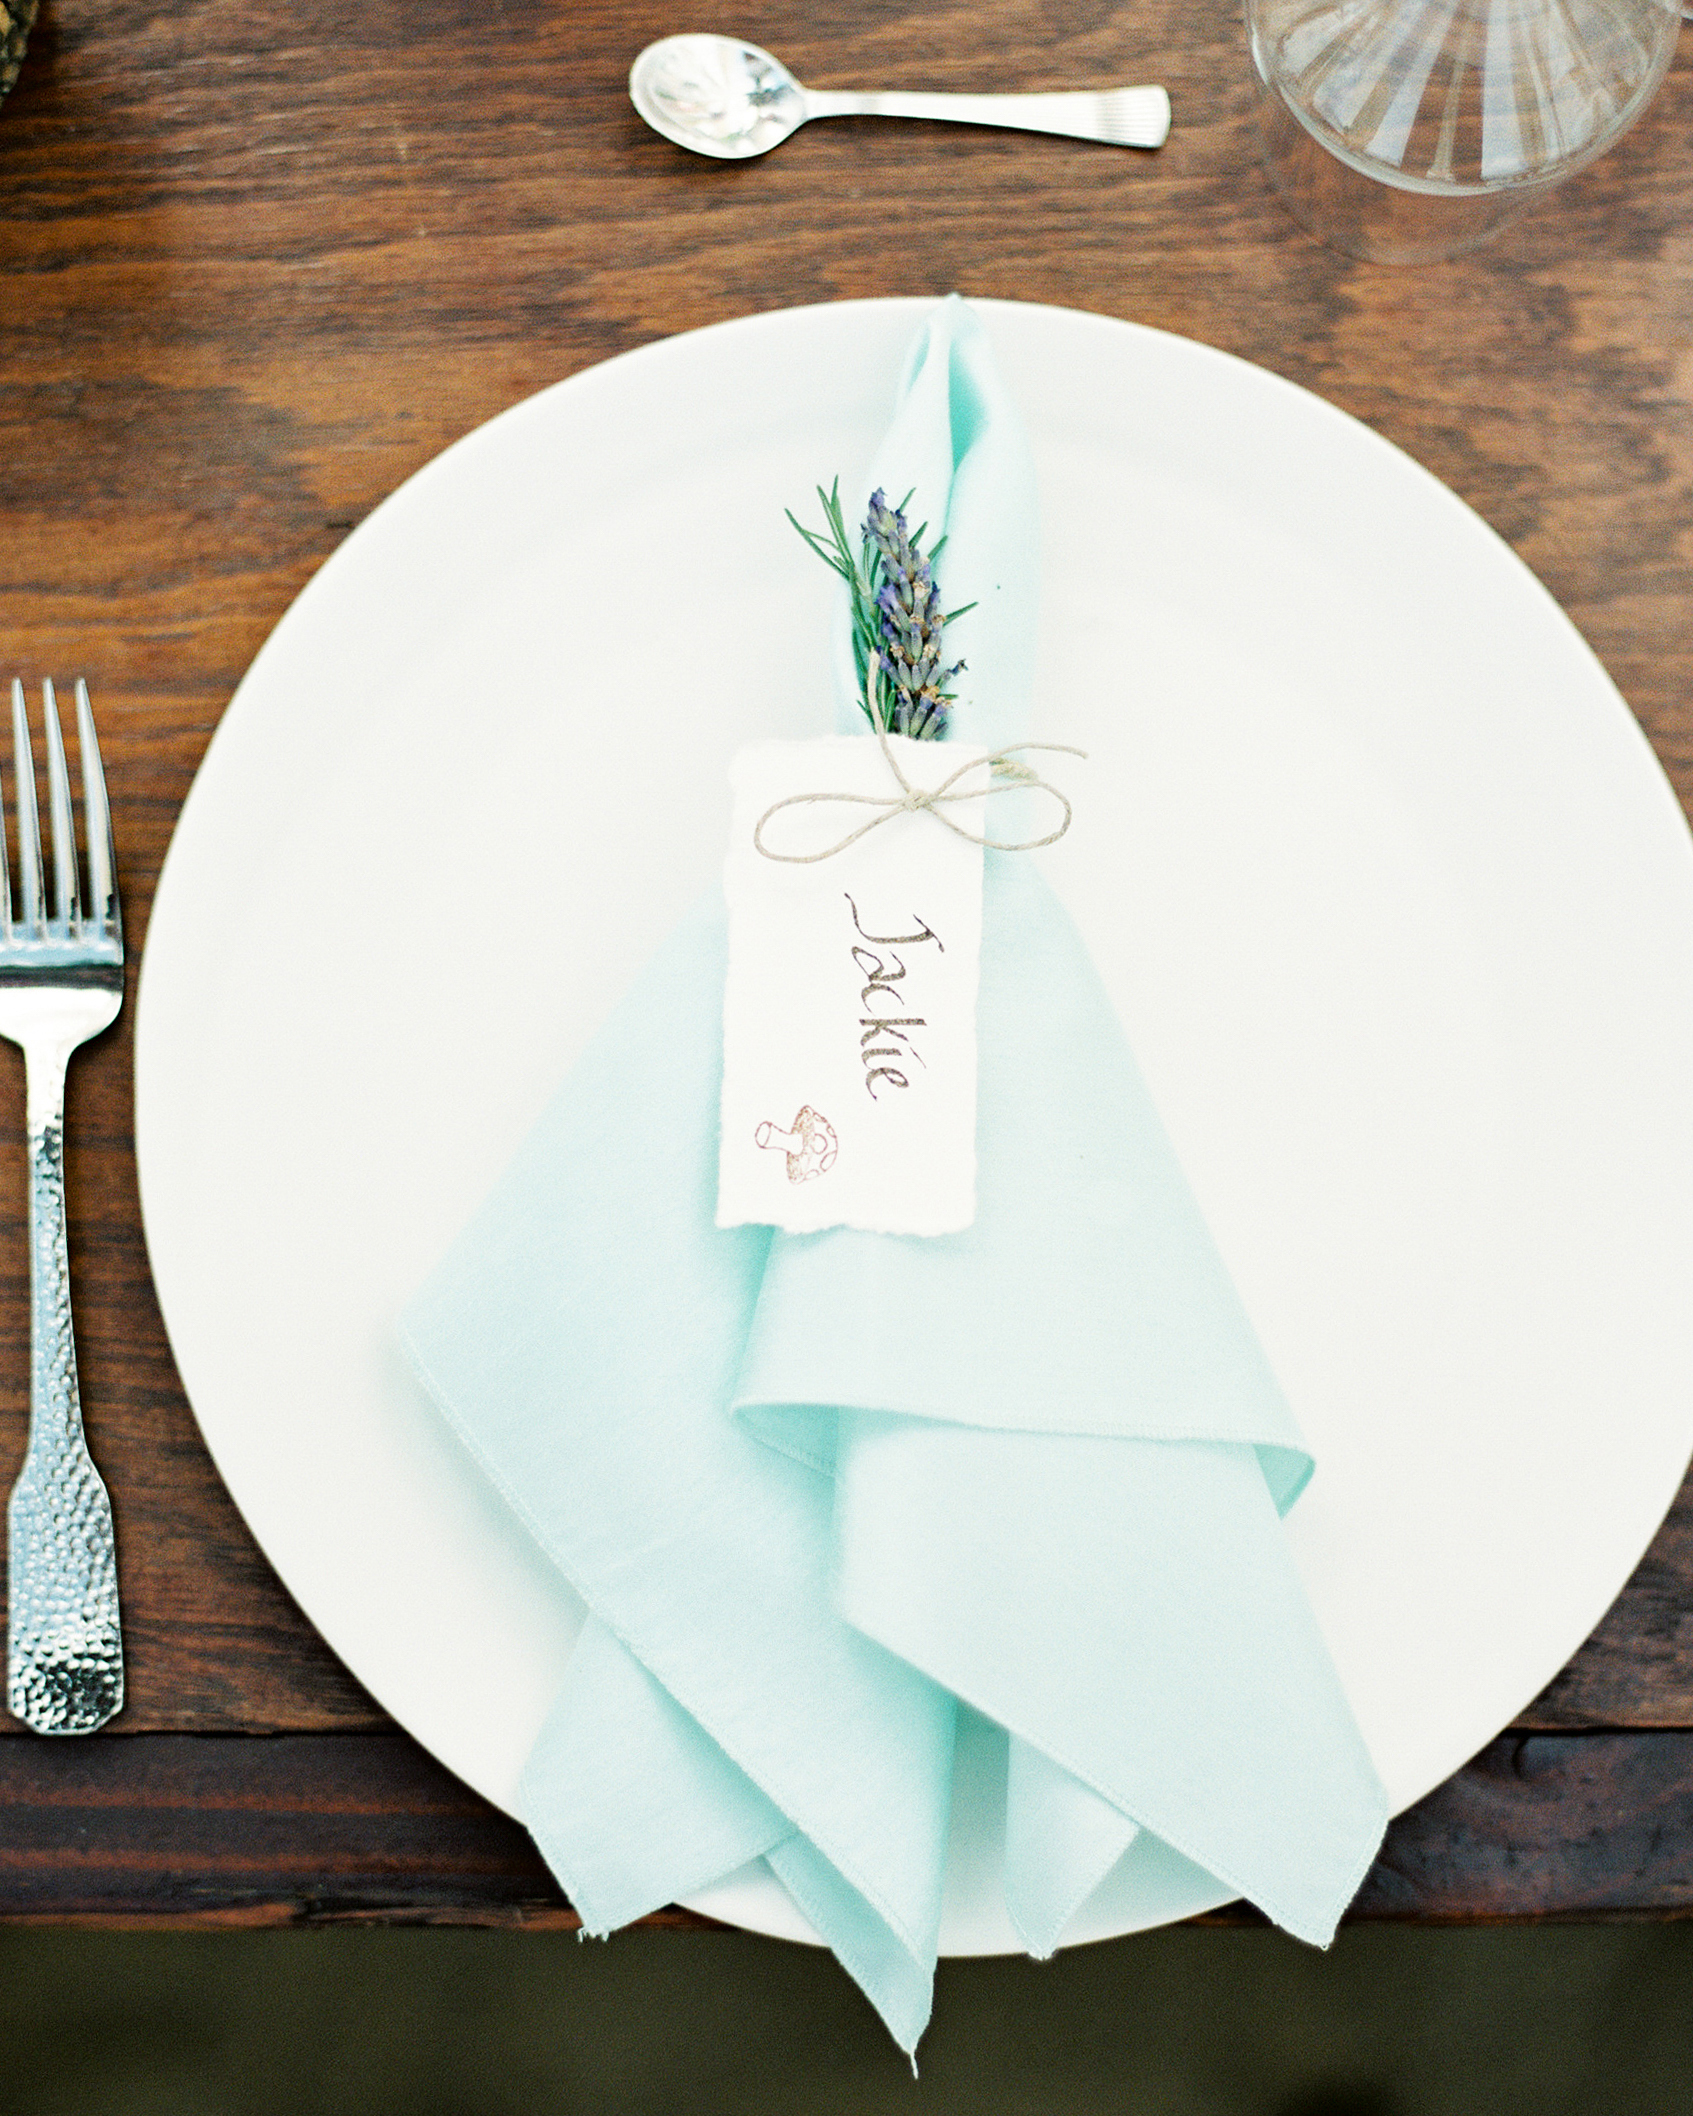 jackie dave wedding place setting